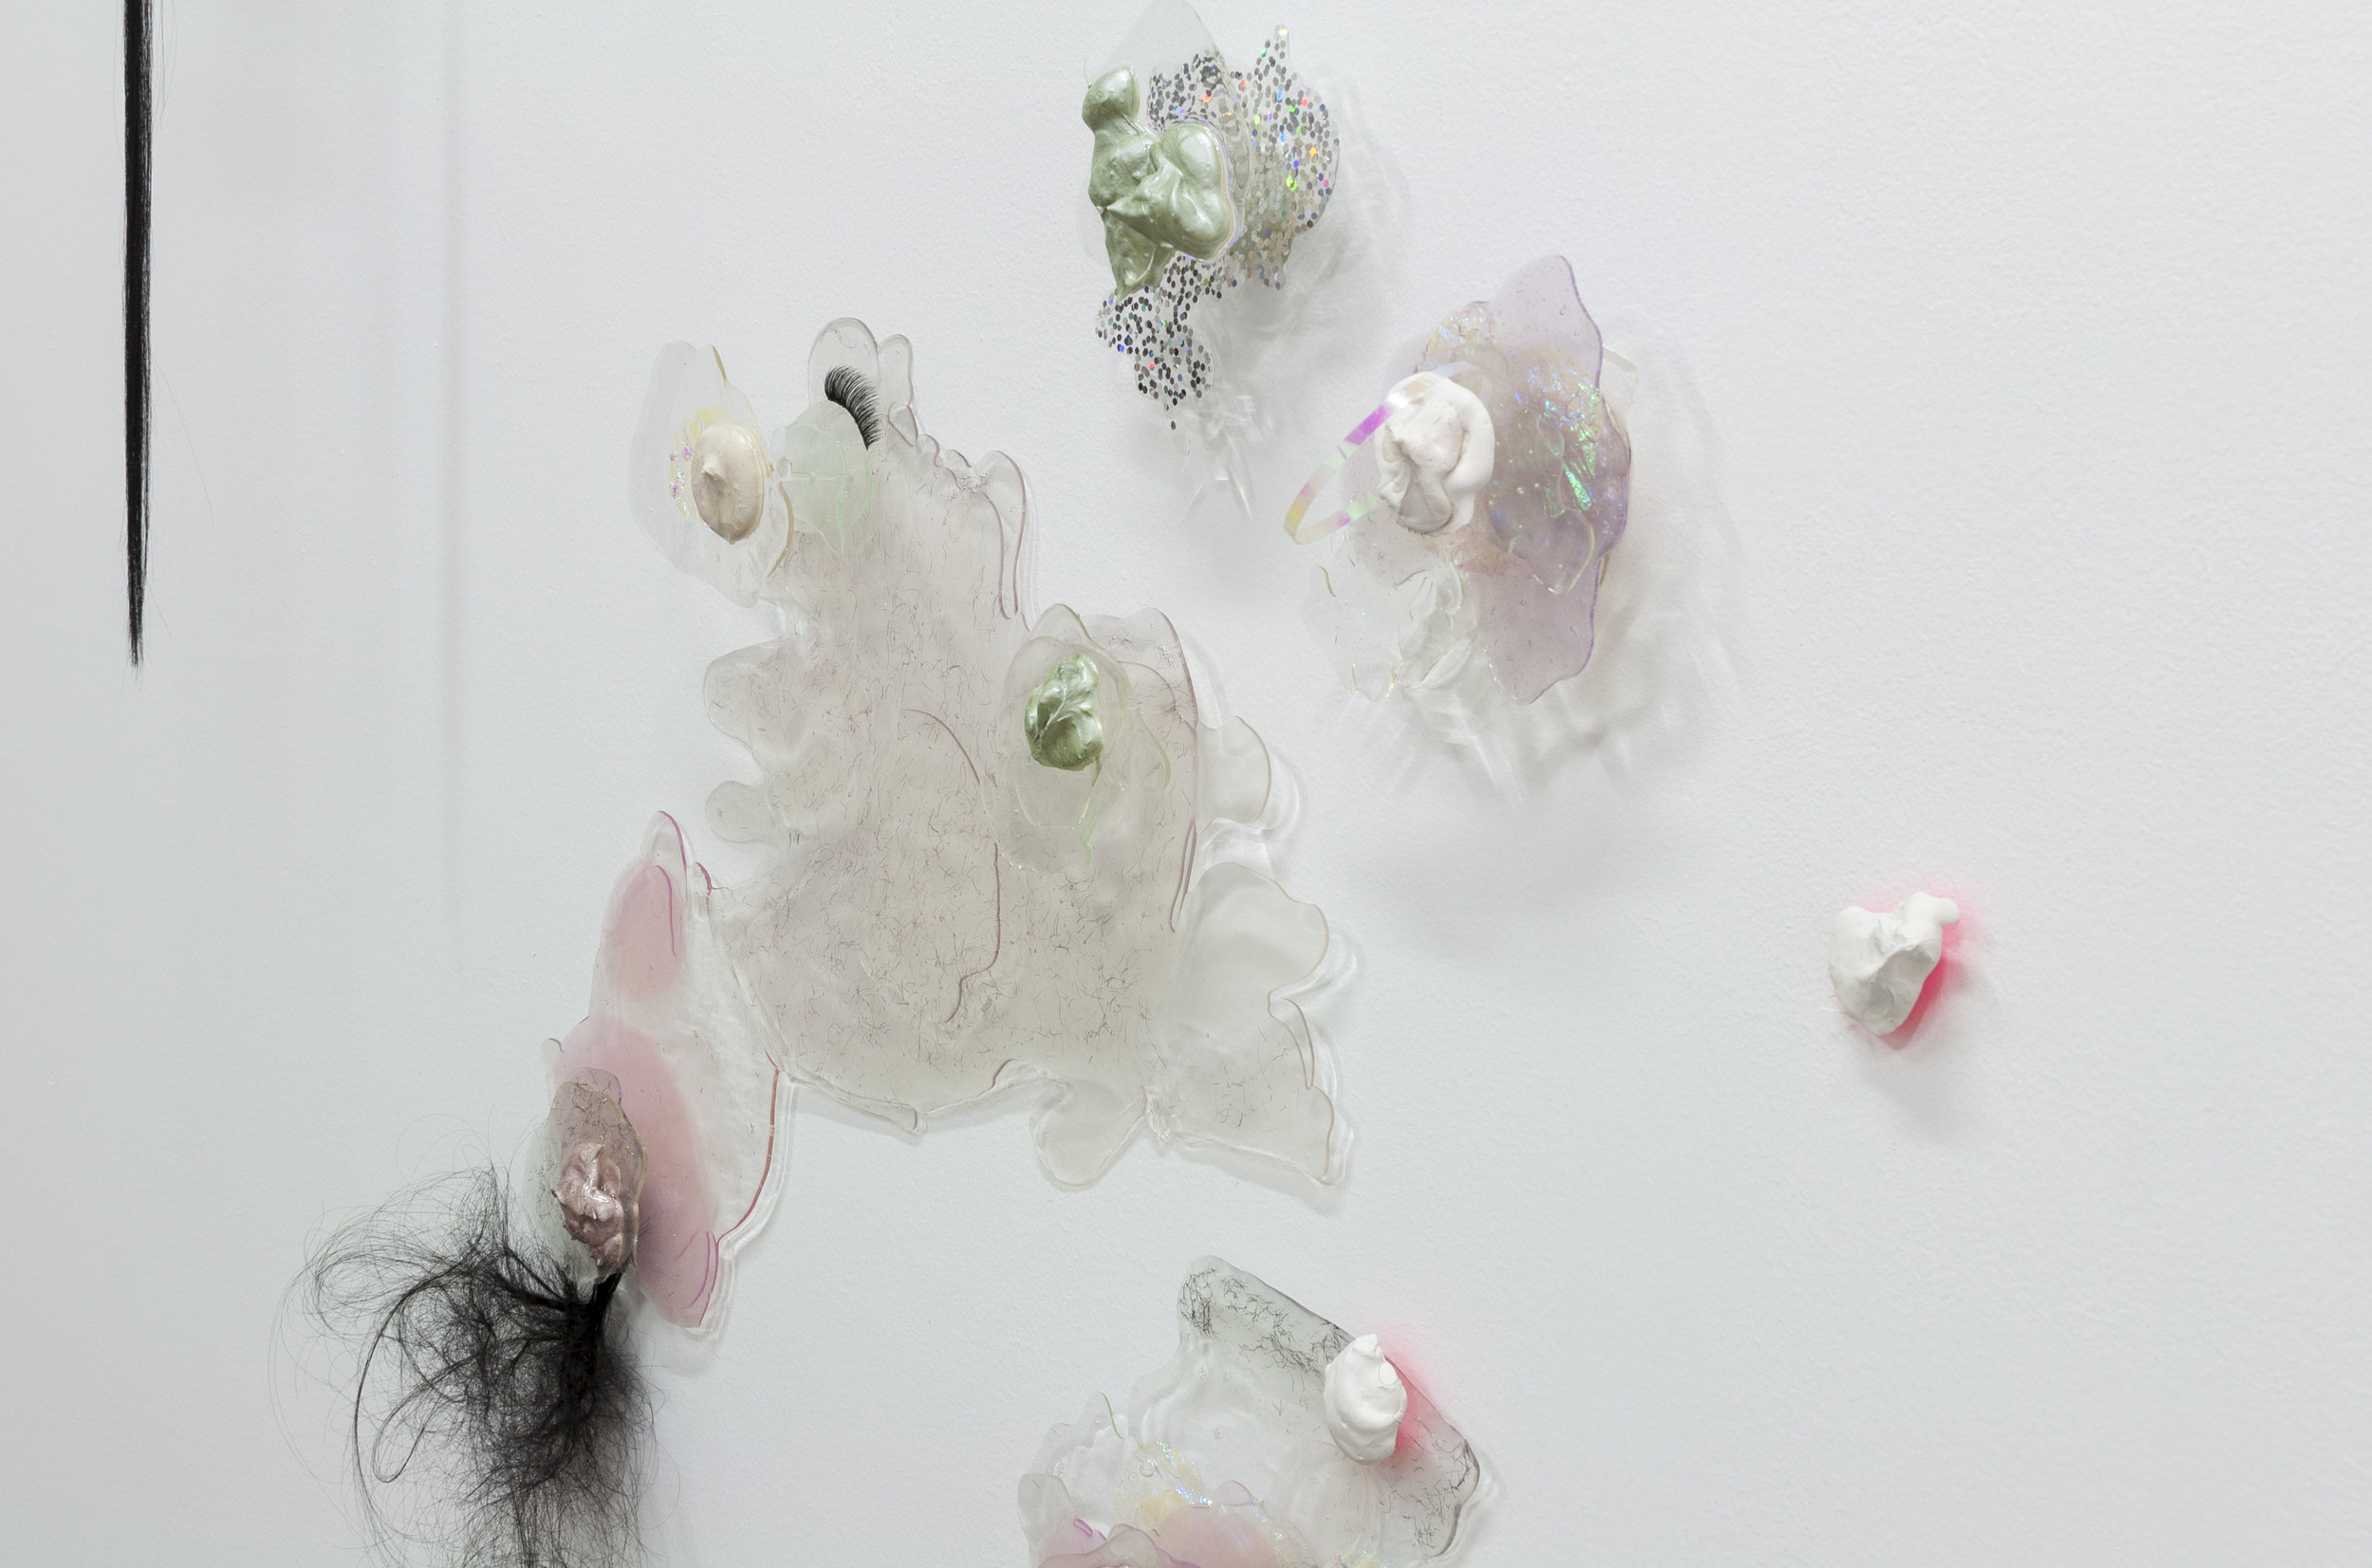 Galen Trezise,  Ectoplasmic Other,  2016, wood, resin, synthetic hair, eyelash extensions, plexiglass, plaster, acrylic paint, dichroic film, glitter (detail)